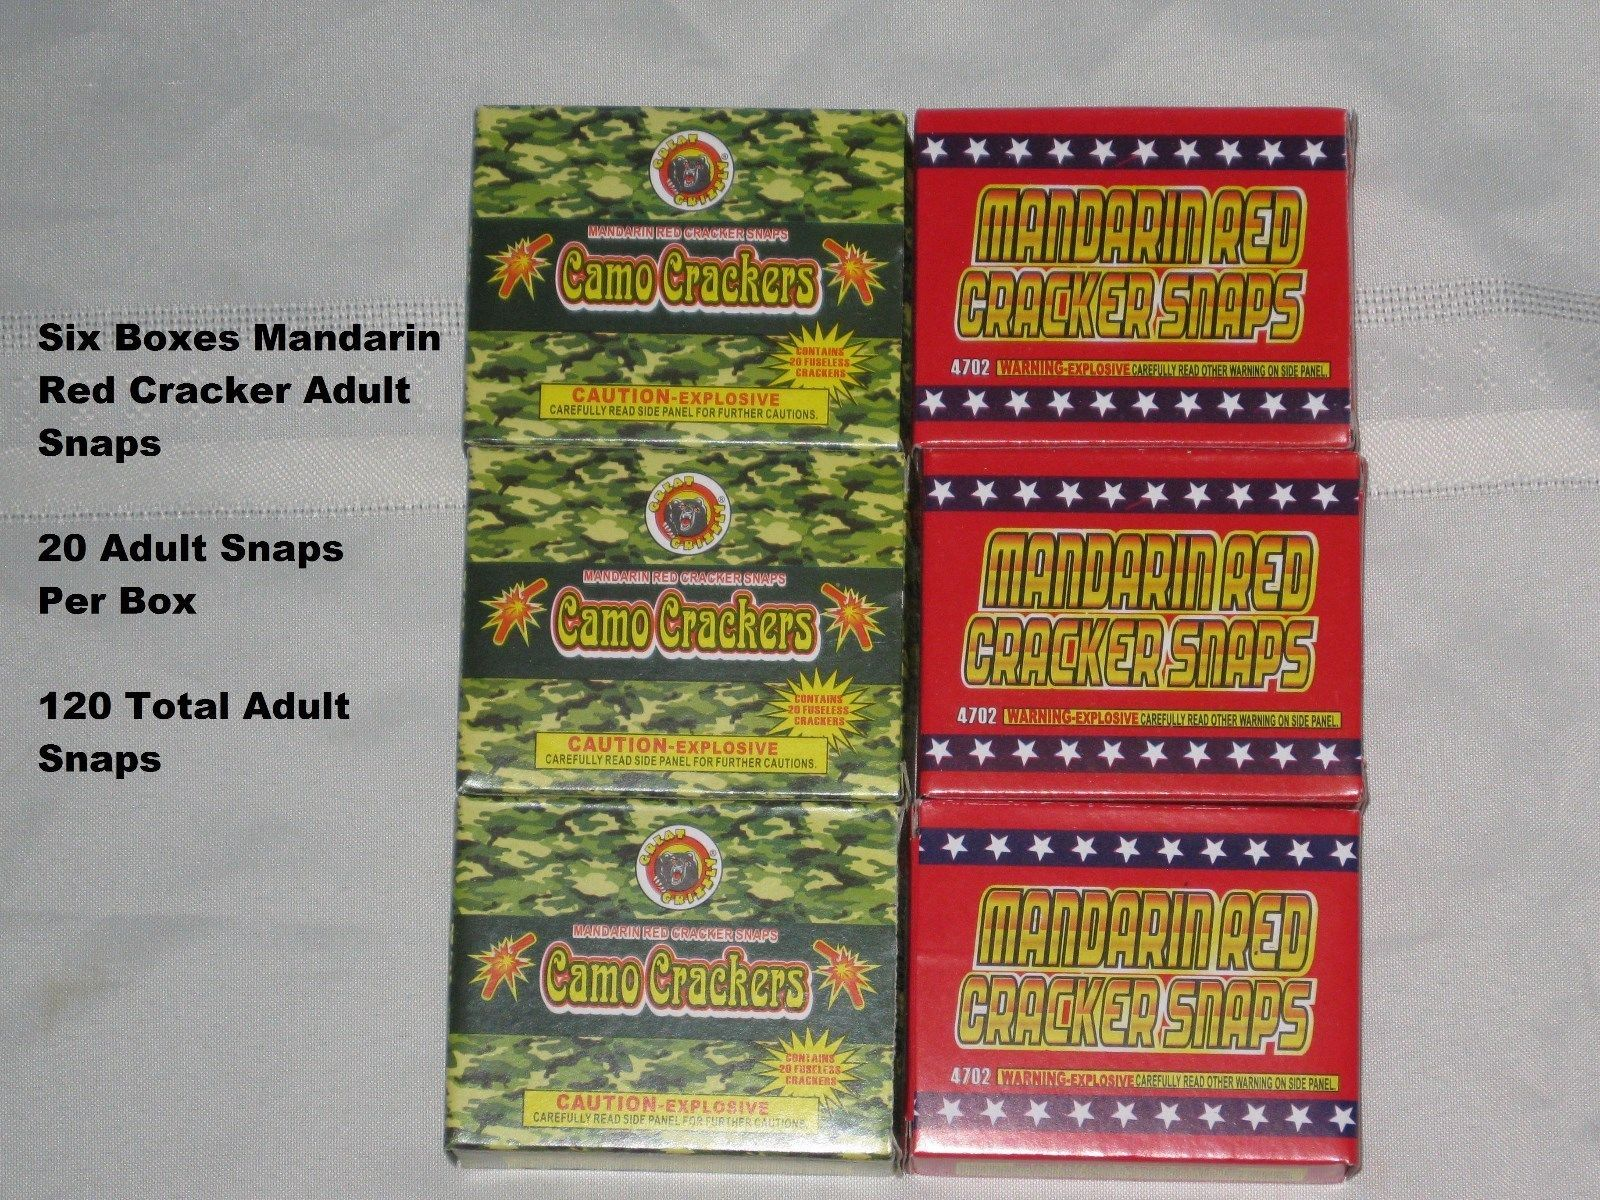 6 Boxes Red Cracker Adult Snaps - 20 Snaps Per Box - Very Loud